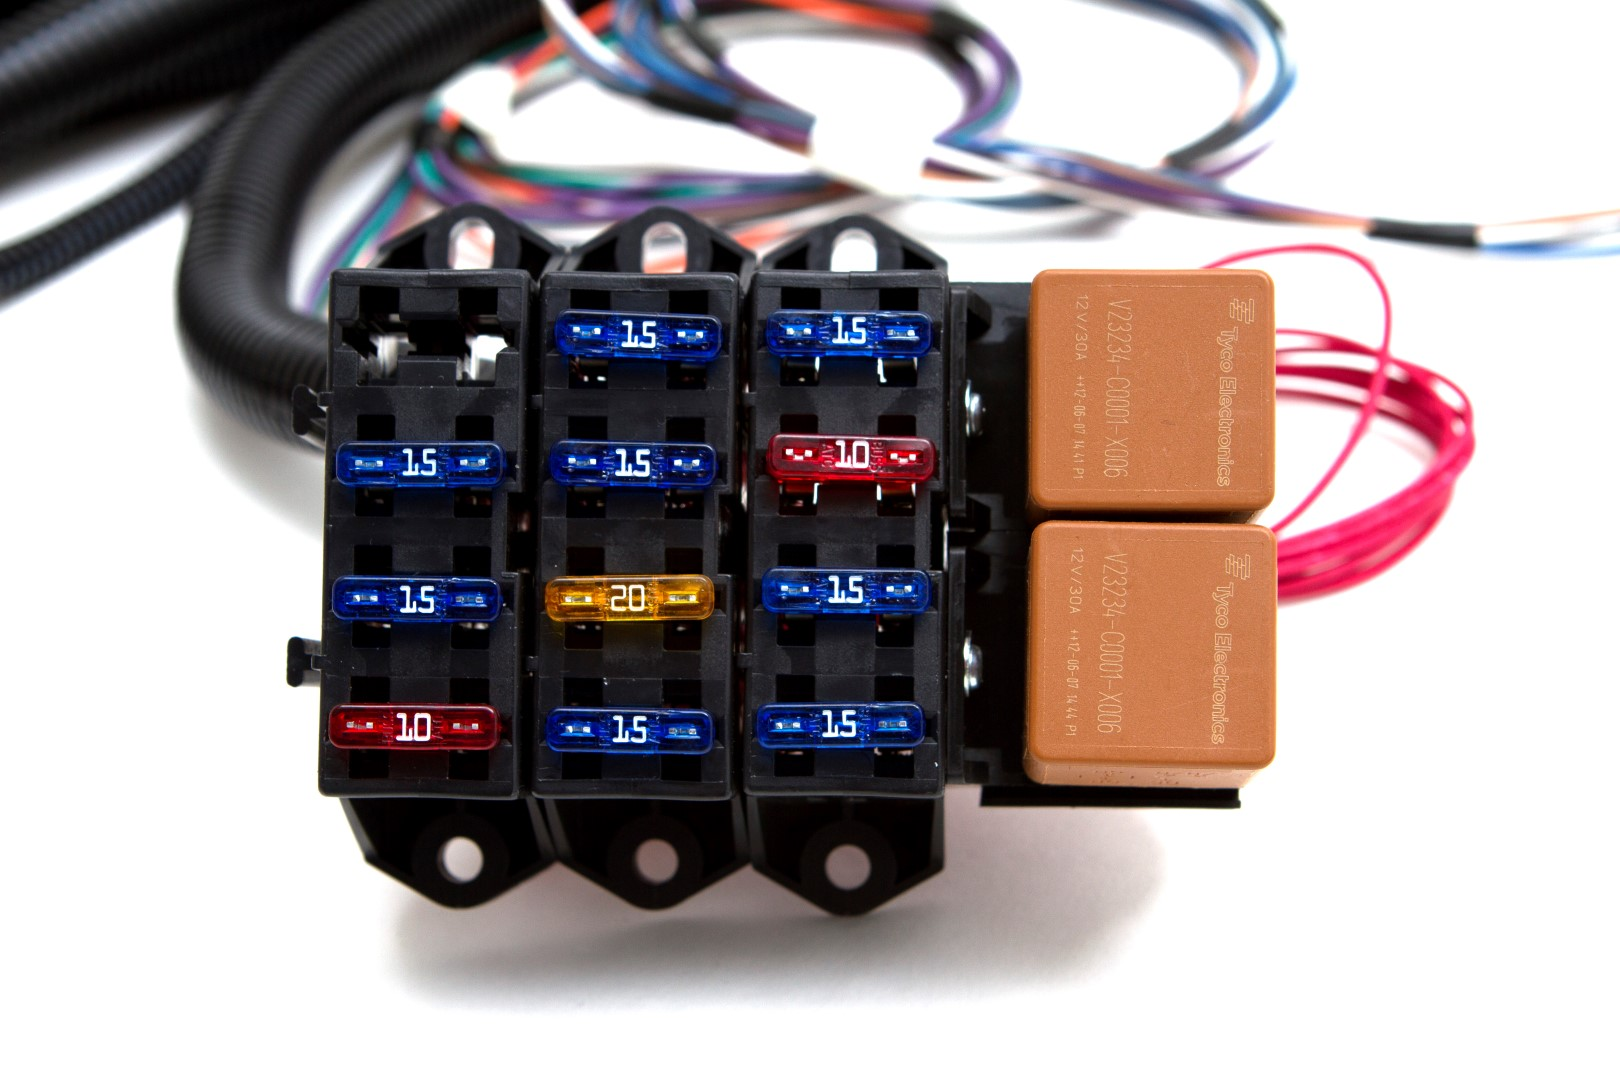 12v 30a relay 4 pin wiring diagram 1998 honda crv fuse box alternator toyskids co 08 13 ls3 6 2l standalone harness w 4l60e trailer gm